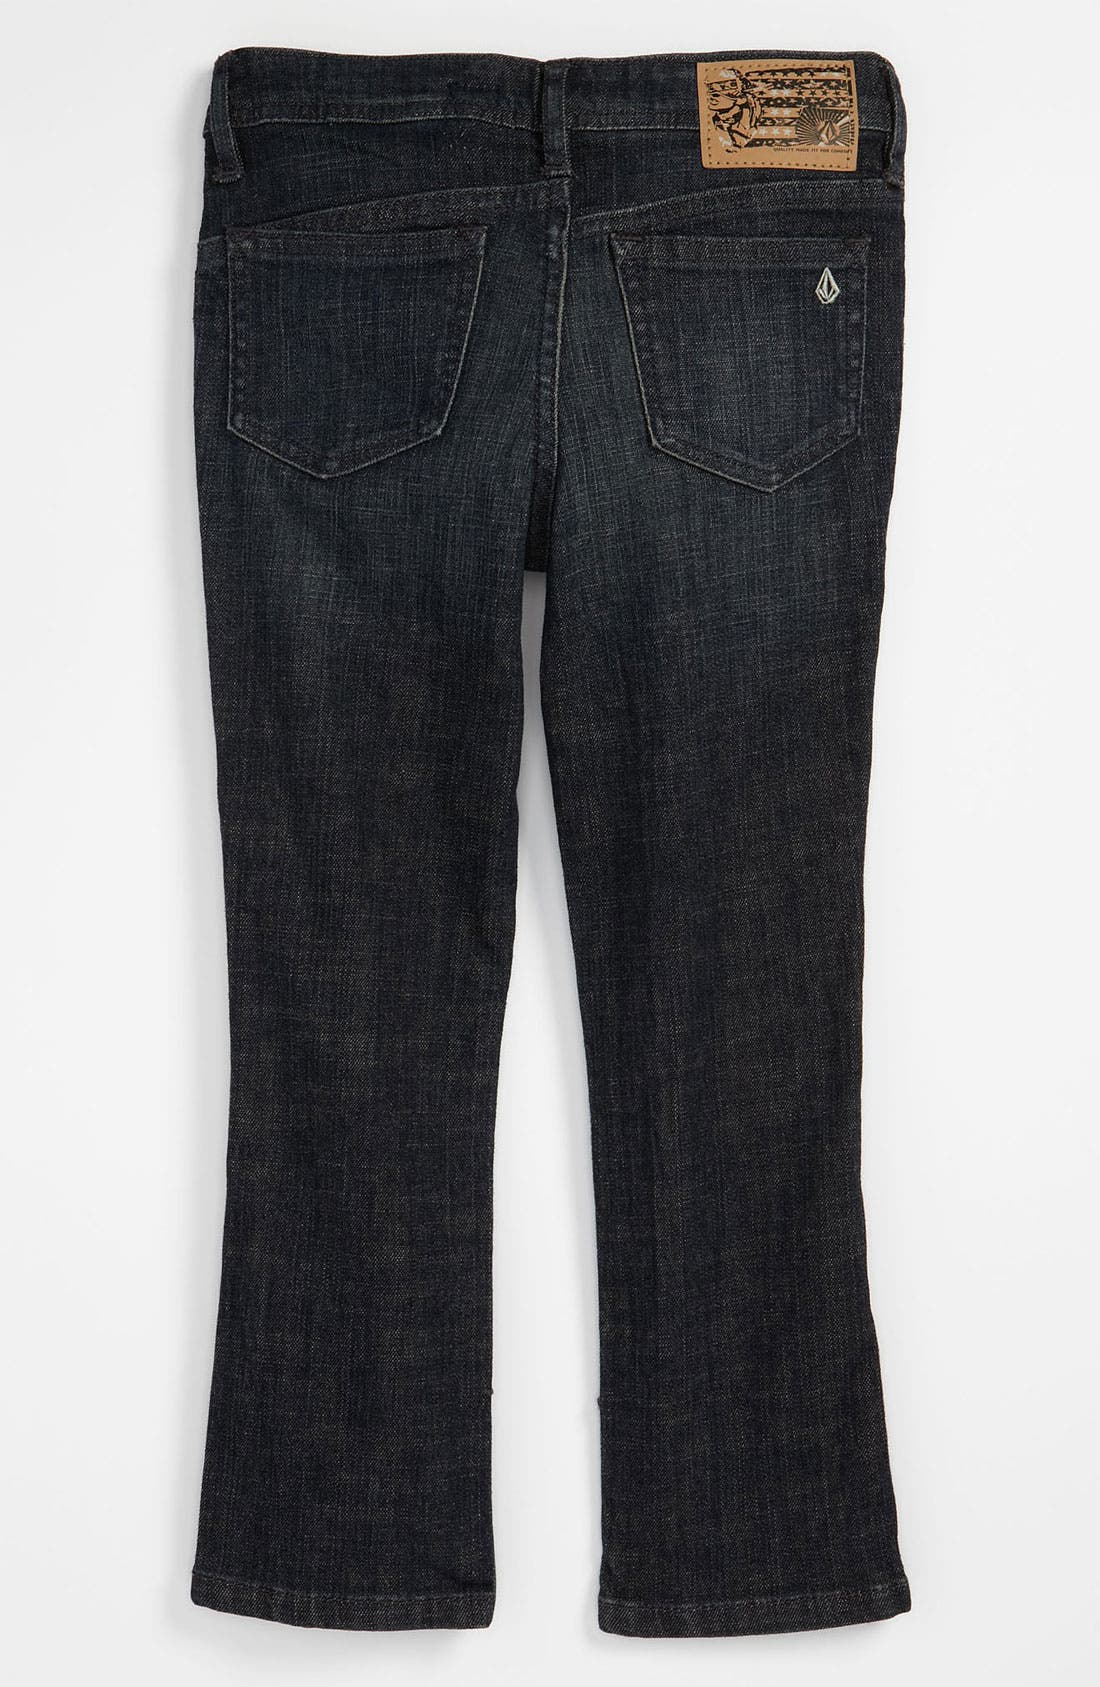 Main Image - Volcom '2 x 4' Skinny Jeans (Little Boys)